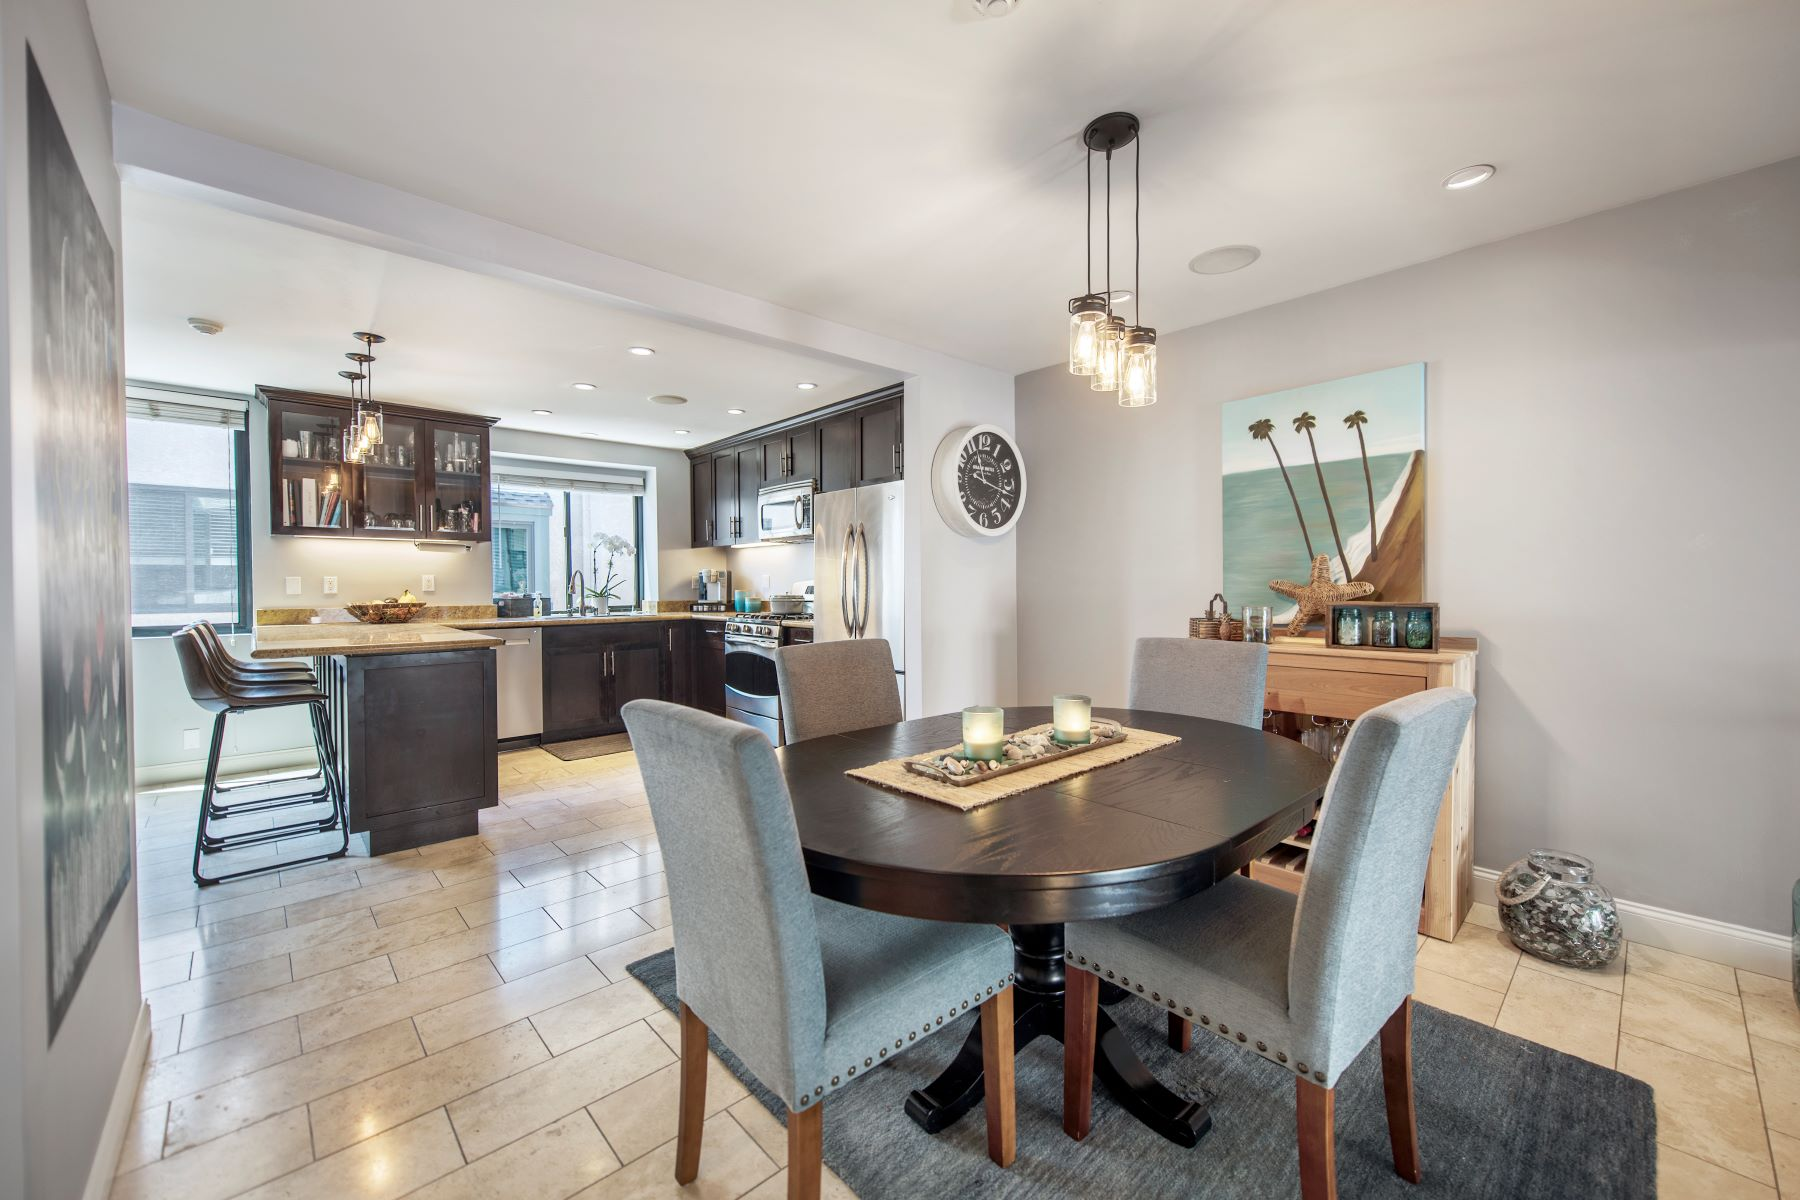 townhouses for Active at 206 Ruby Street, Redondo Beach, CA 90277 206 Ruby Street Redondo Beach, California 90277 United States